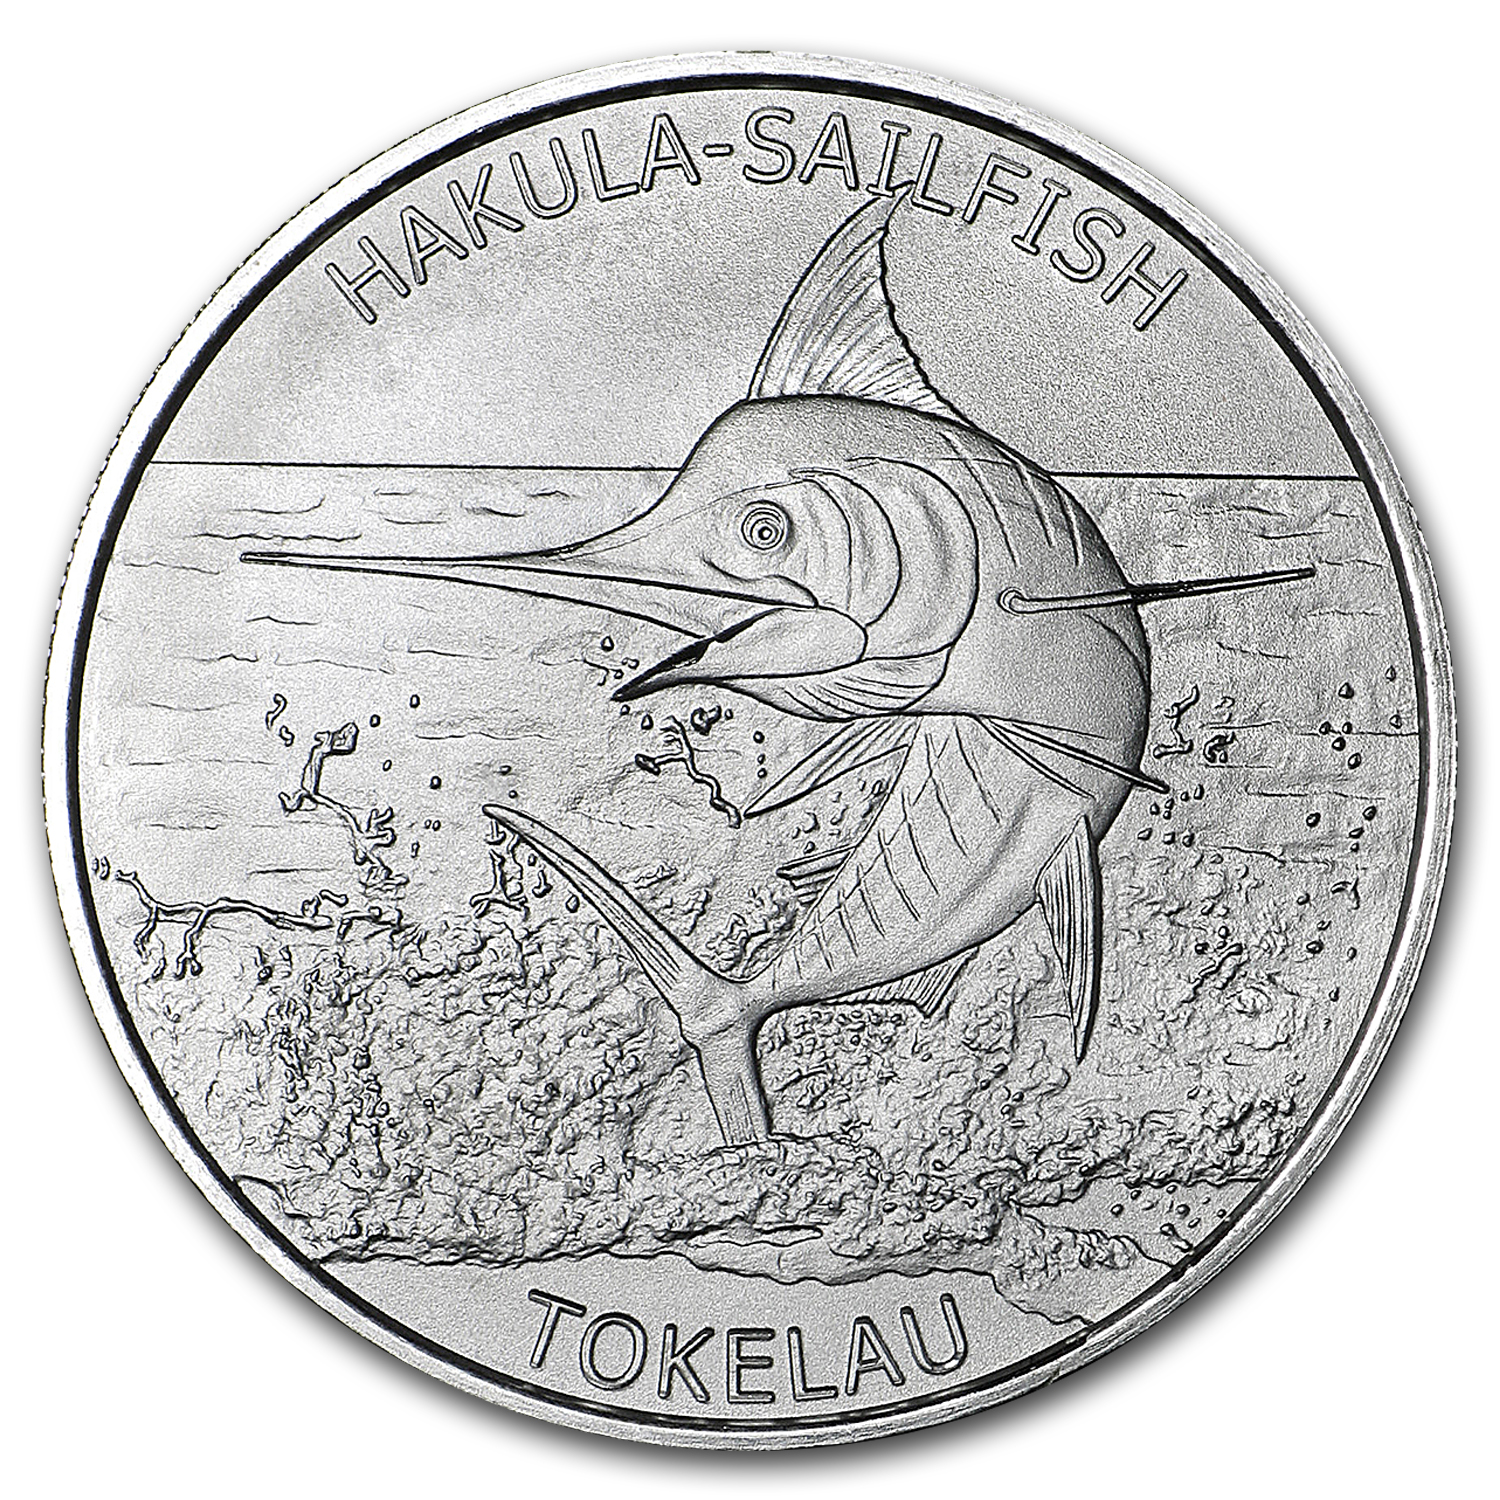 2016 Tokelau 1 oz Silver $5 Hakula Sailfish